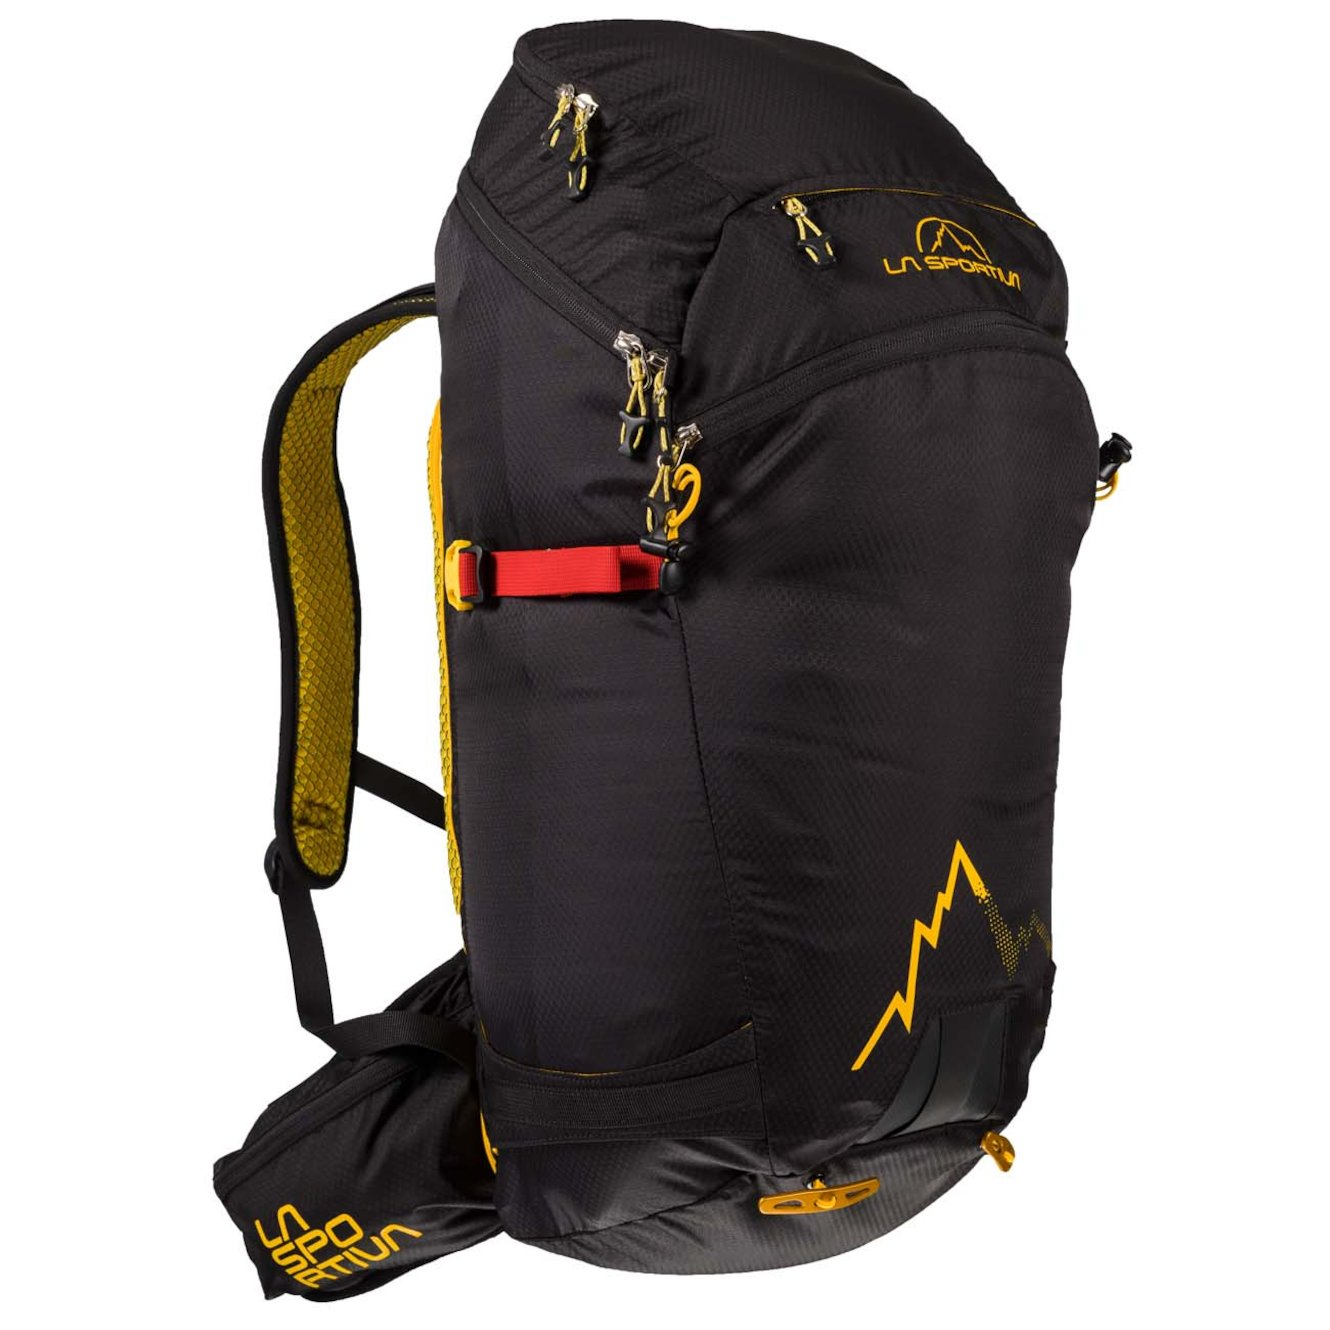 La Sportiva Sunlite Backpack